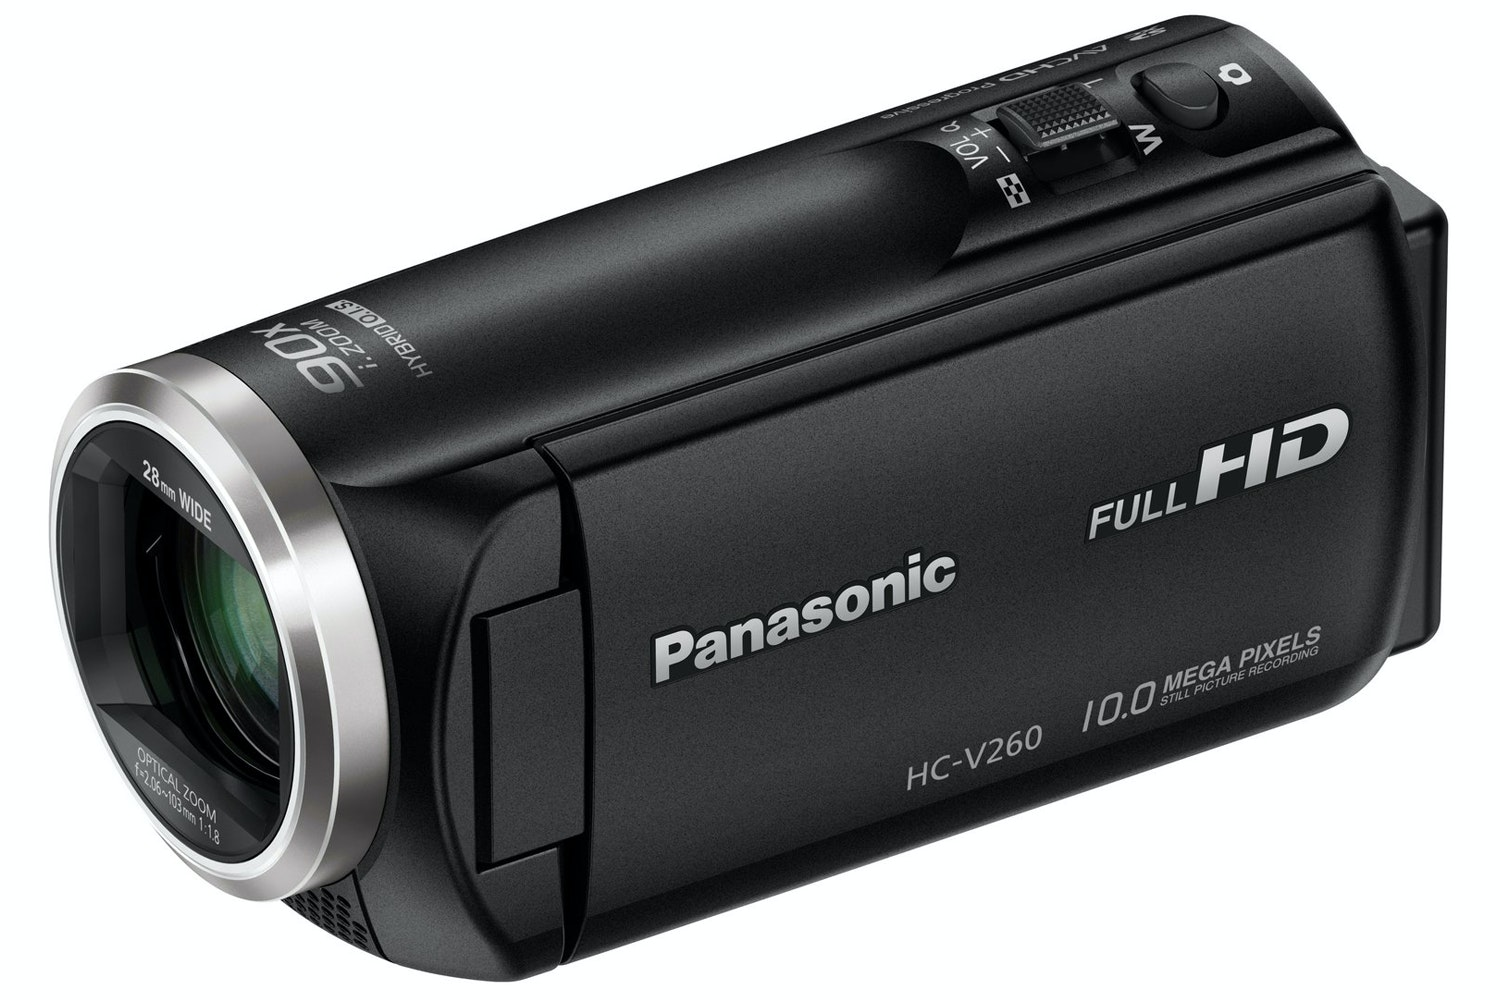 Panasonic HC-V260 Full HD Camcorder